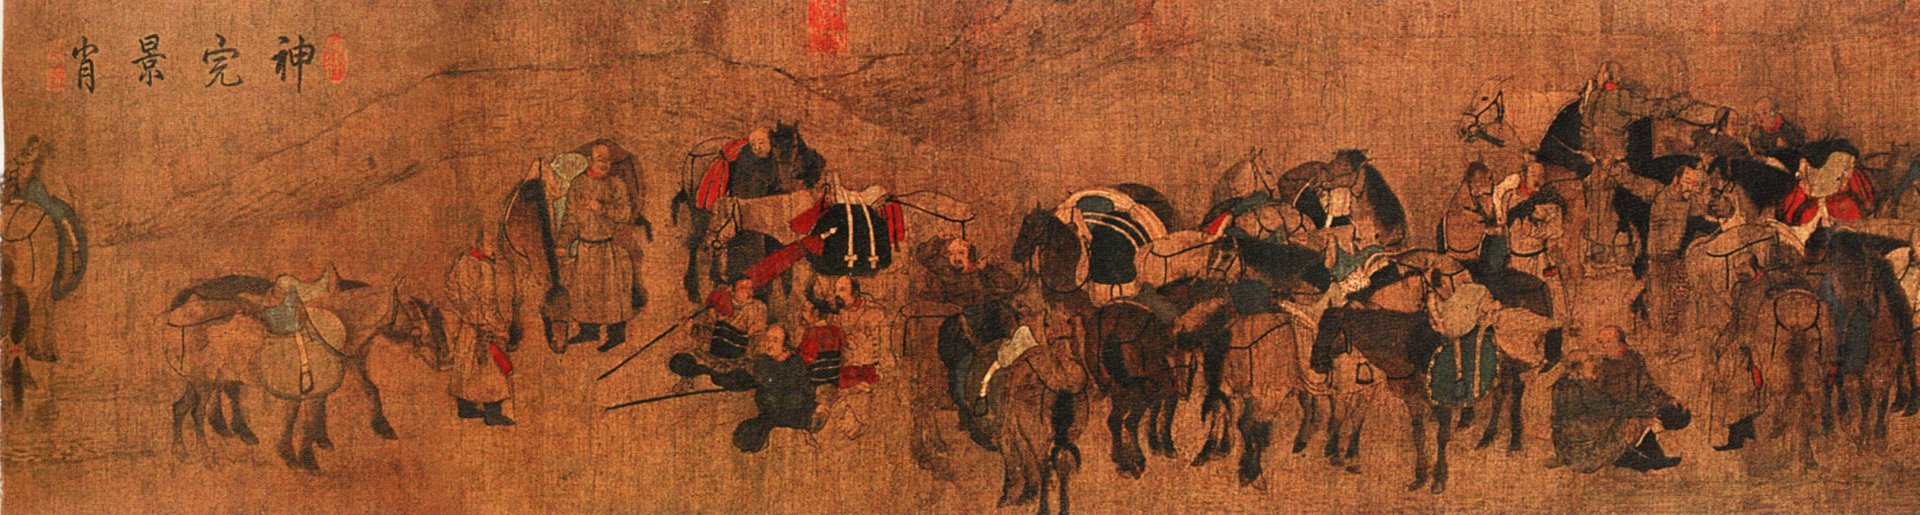 Ху Жан076_1c0086b.Ancient_Chinese_Painting.jpg